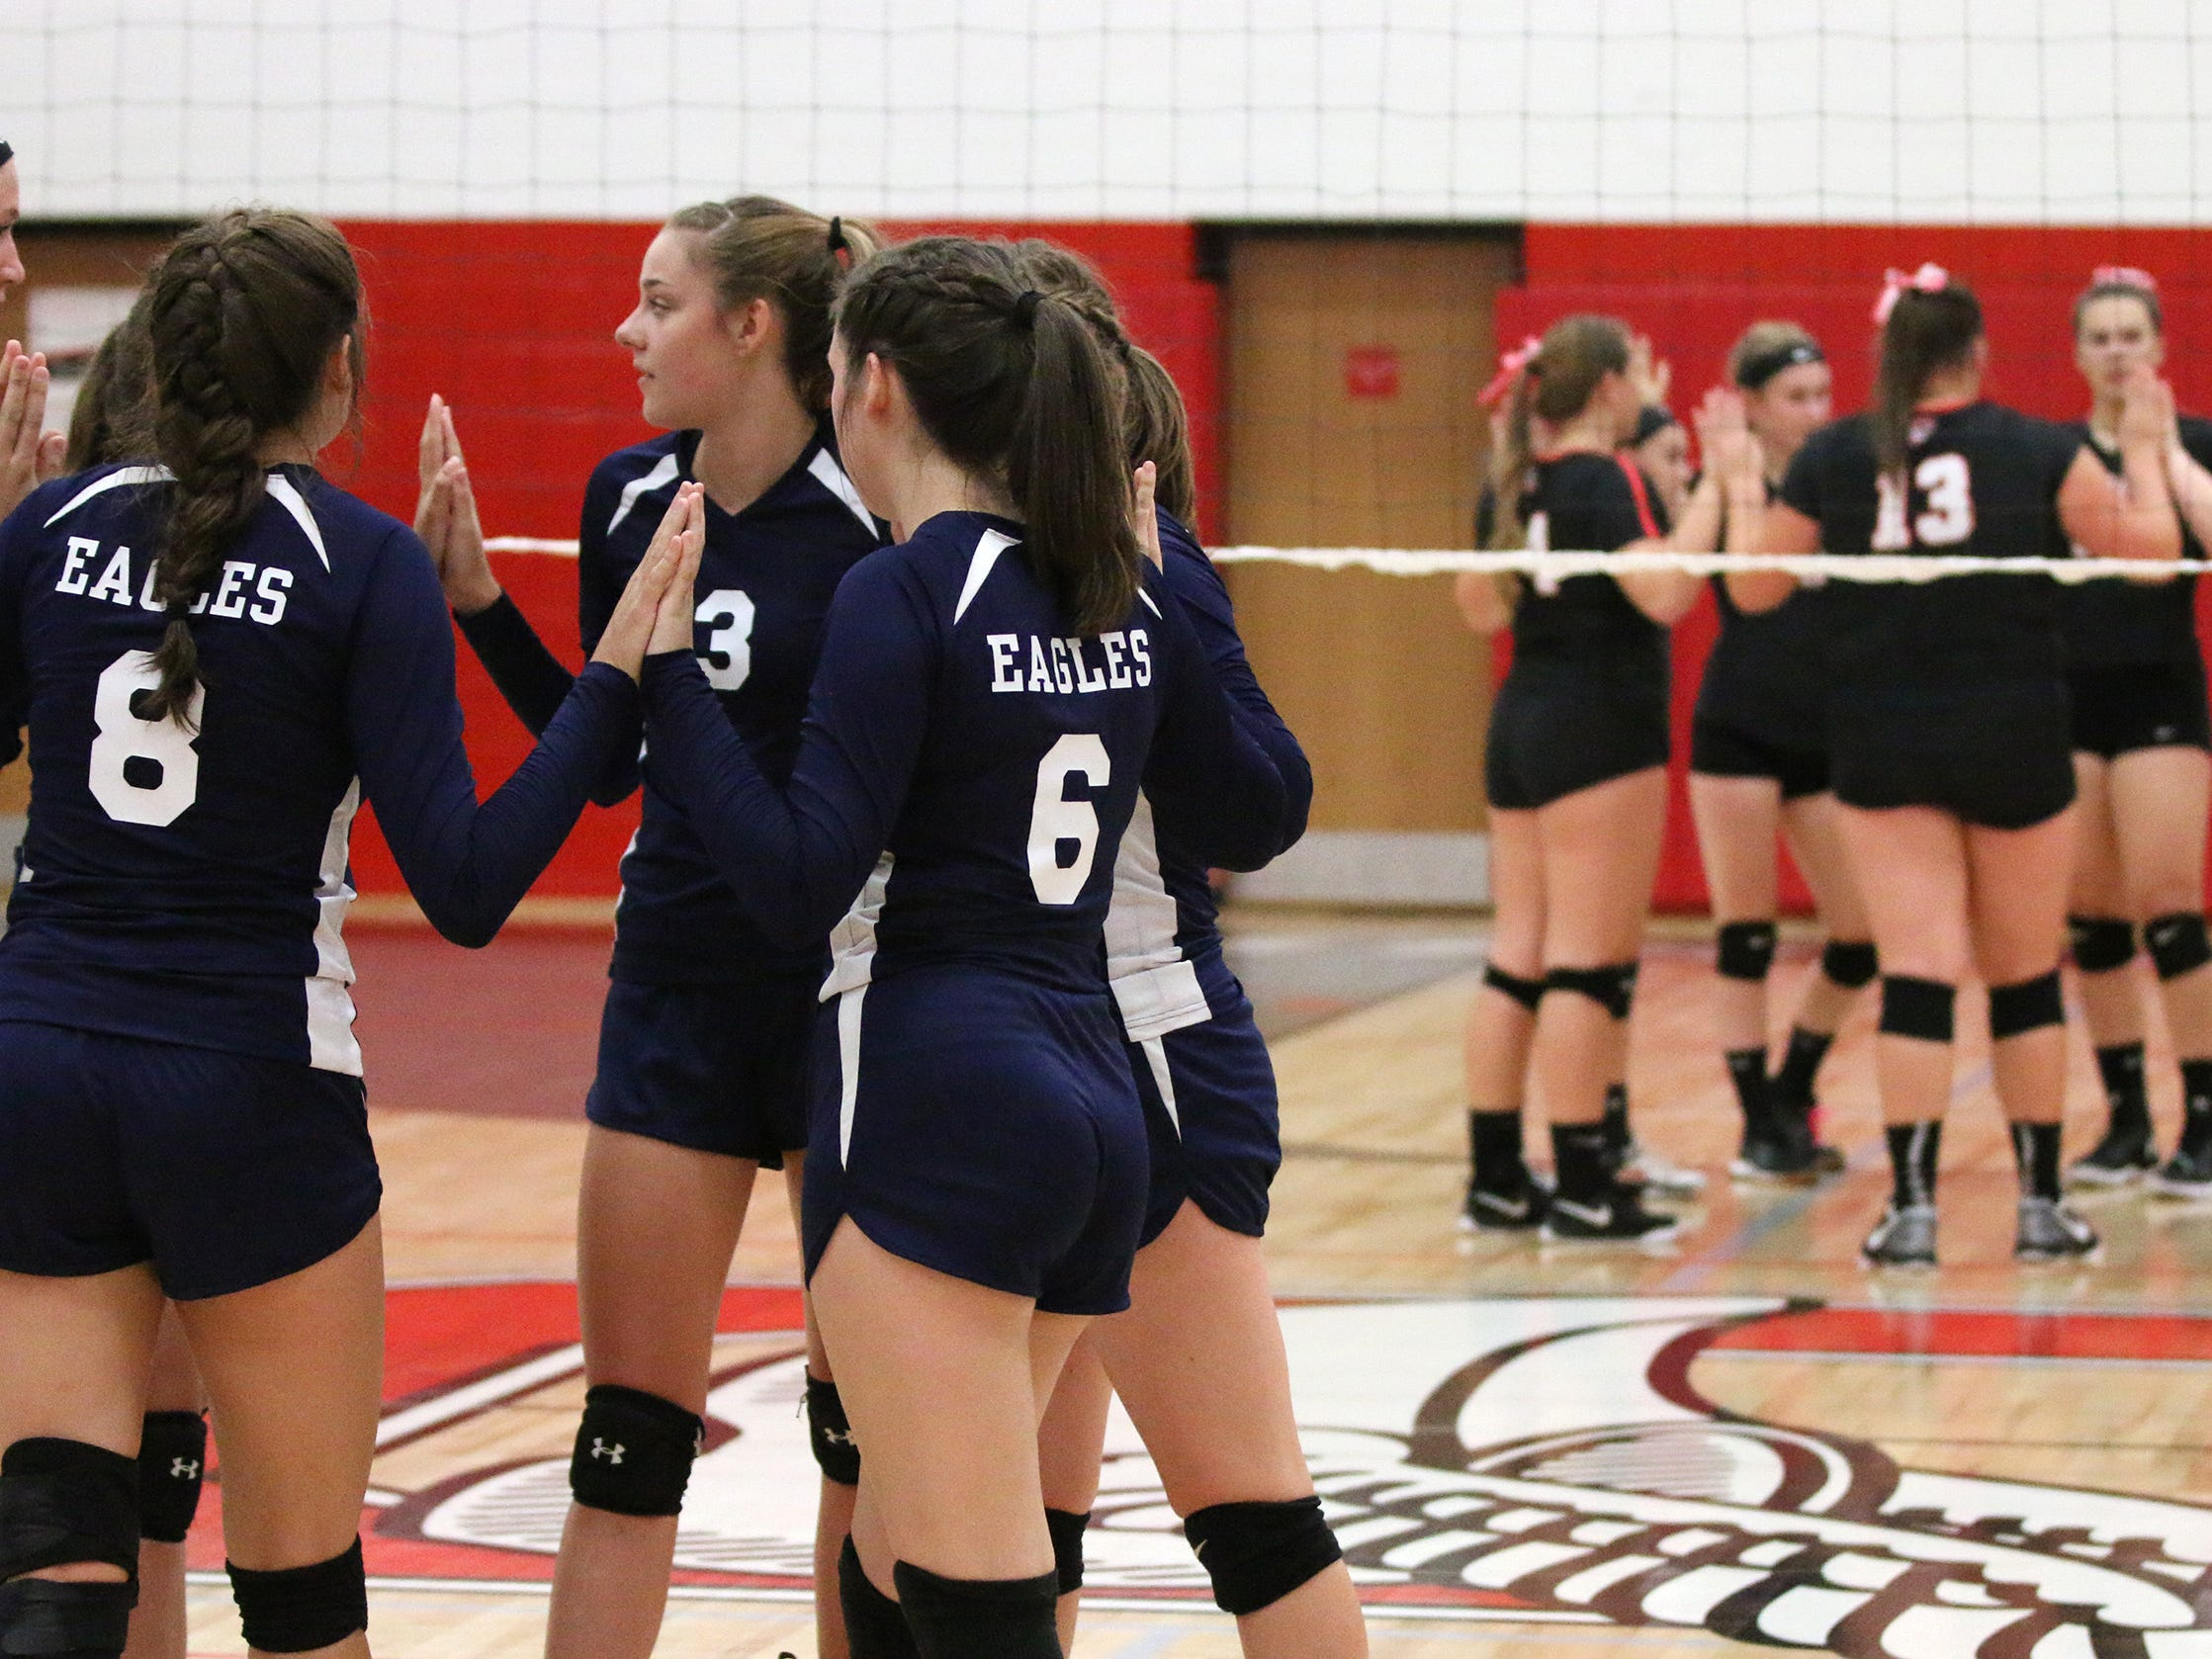 Sheboygan Christian, left, and Oostburg players huddle before action, Thursday, September 13, 2018, in Oostburg, Wis.